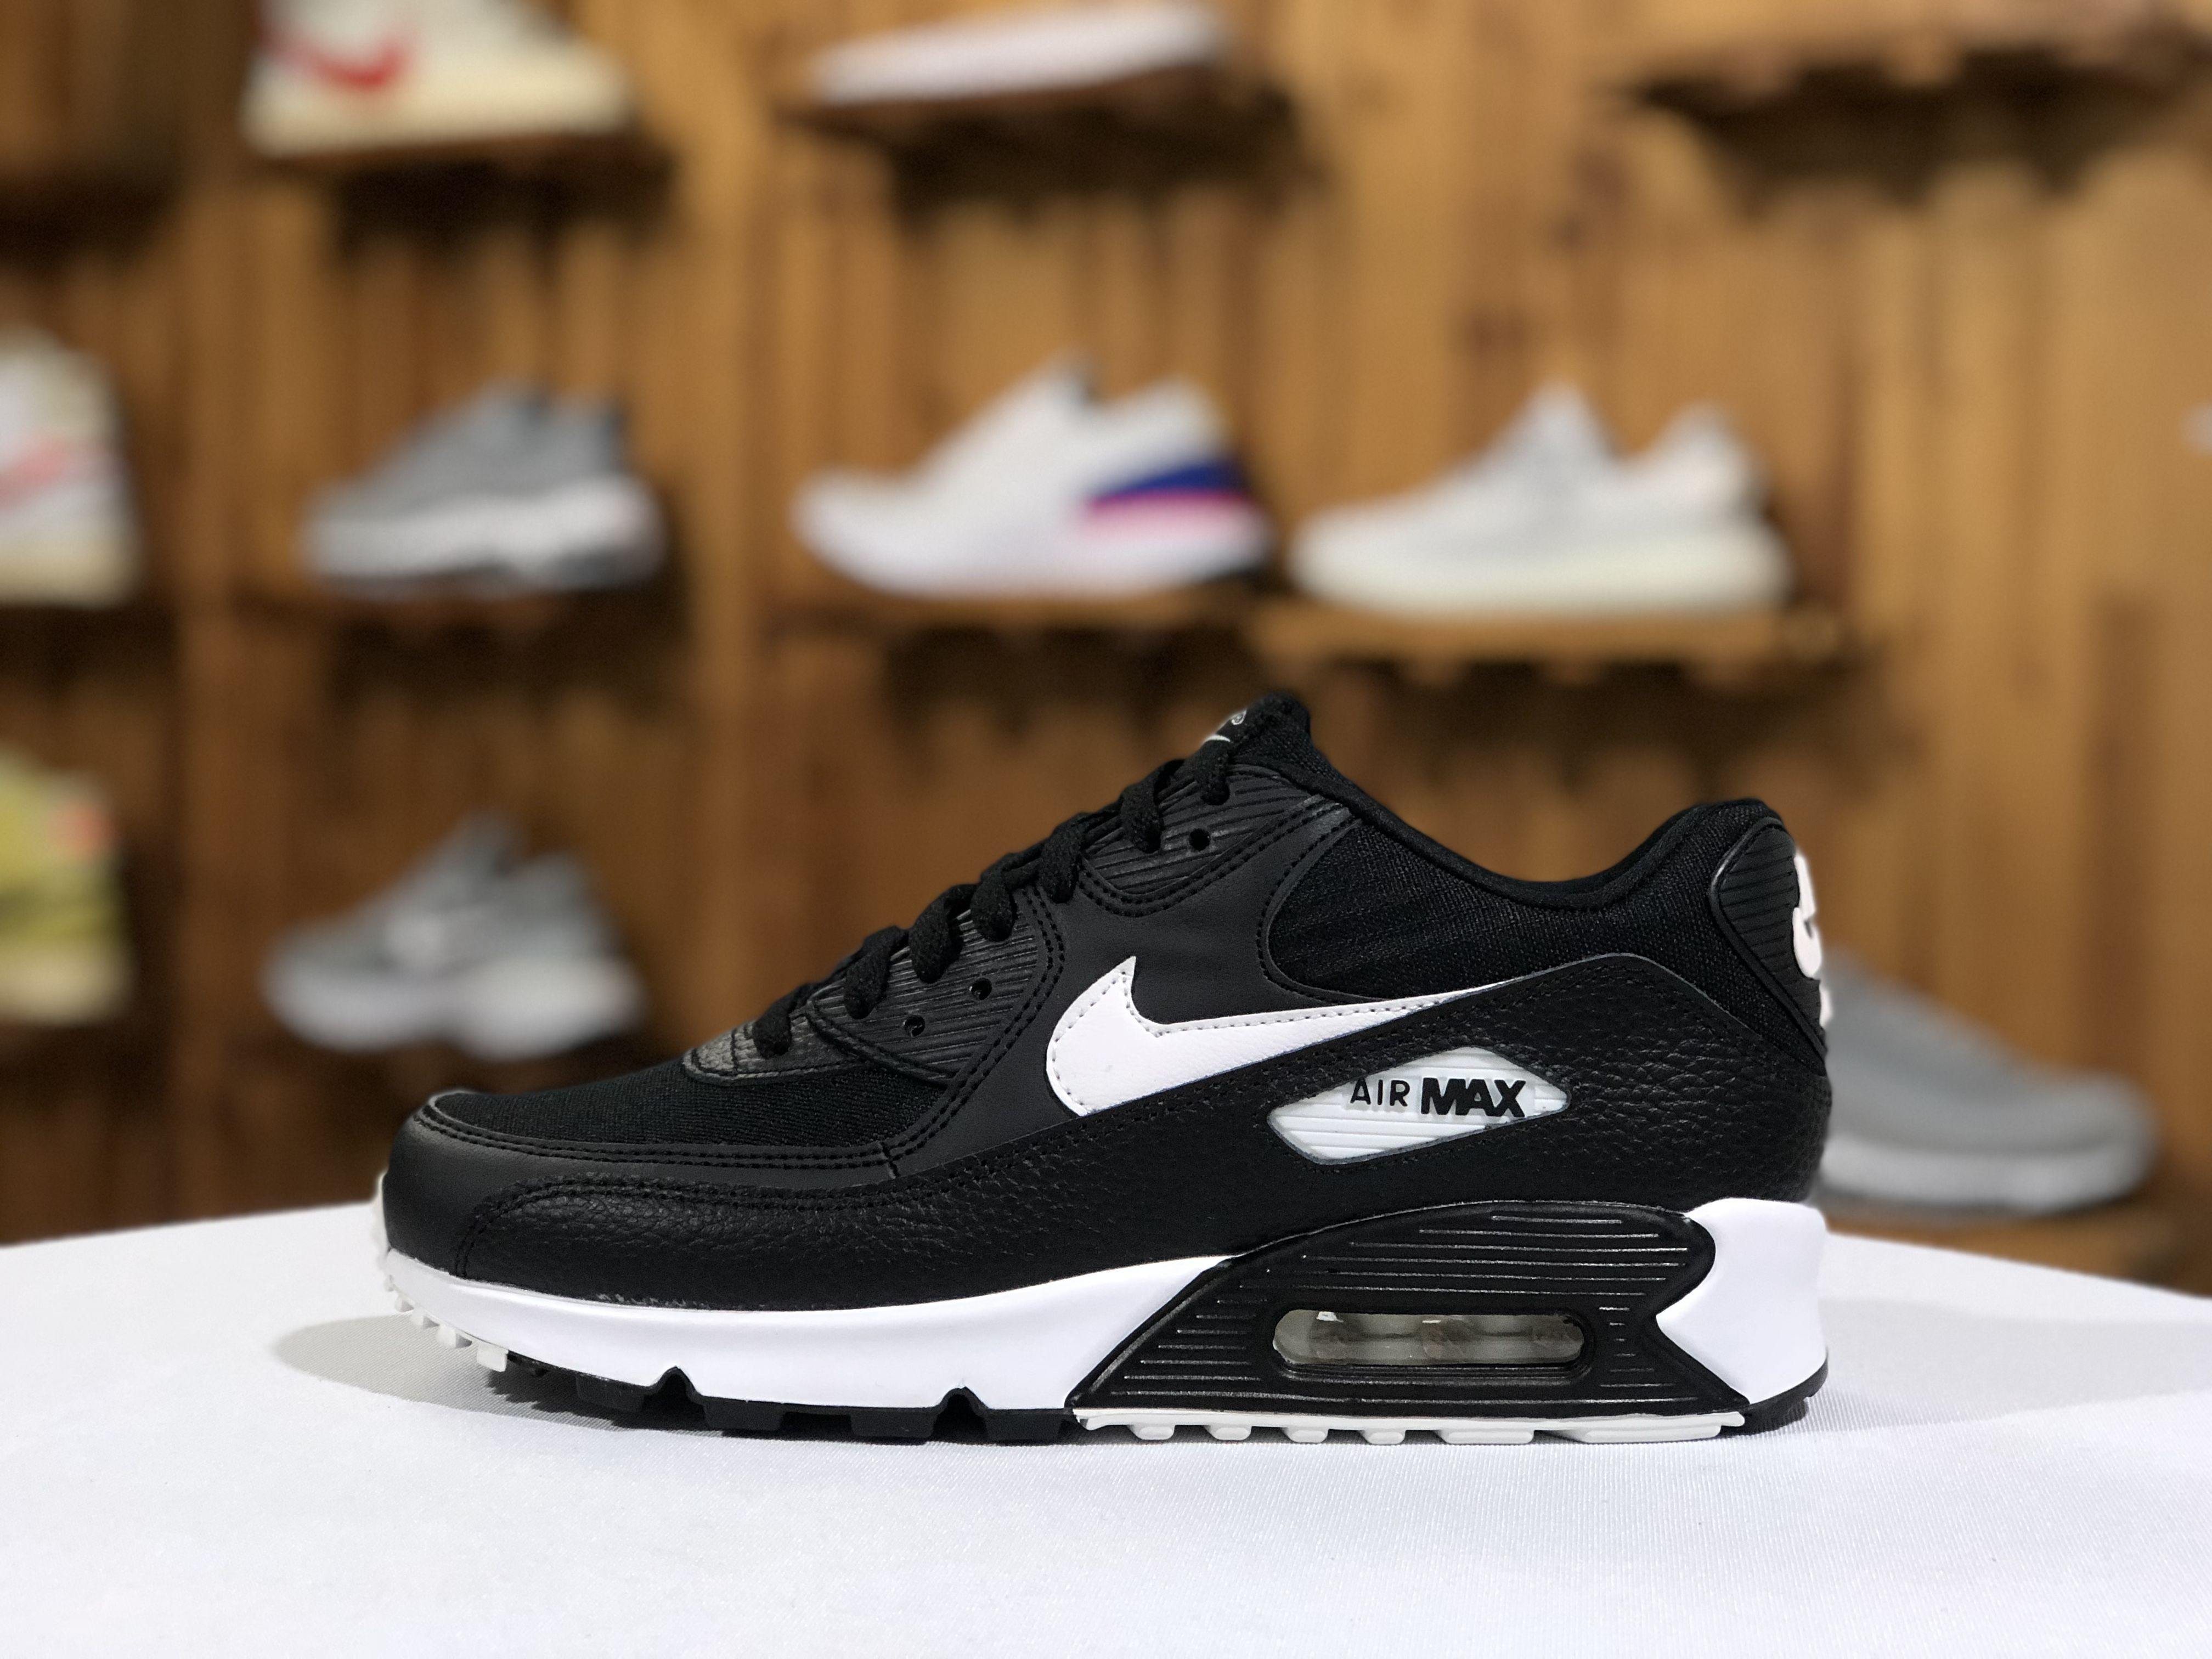 Nike Air Max 90 Black White Mens Running Shoes 325213 060